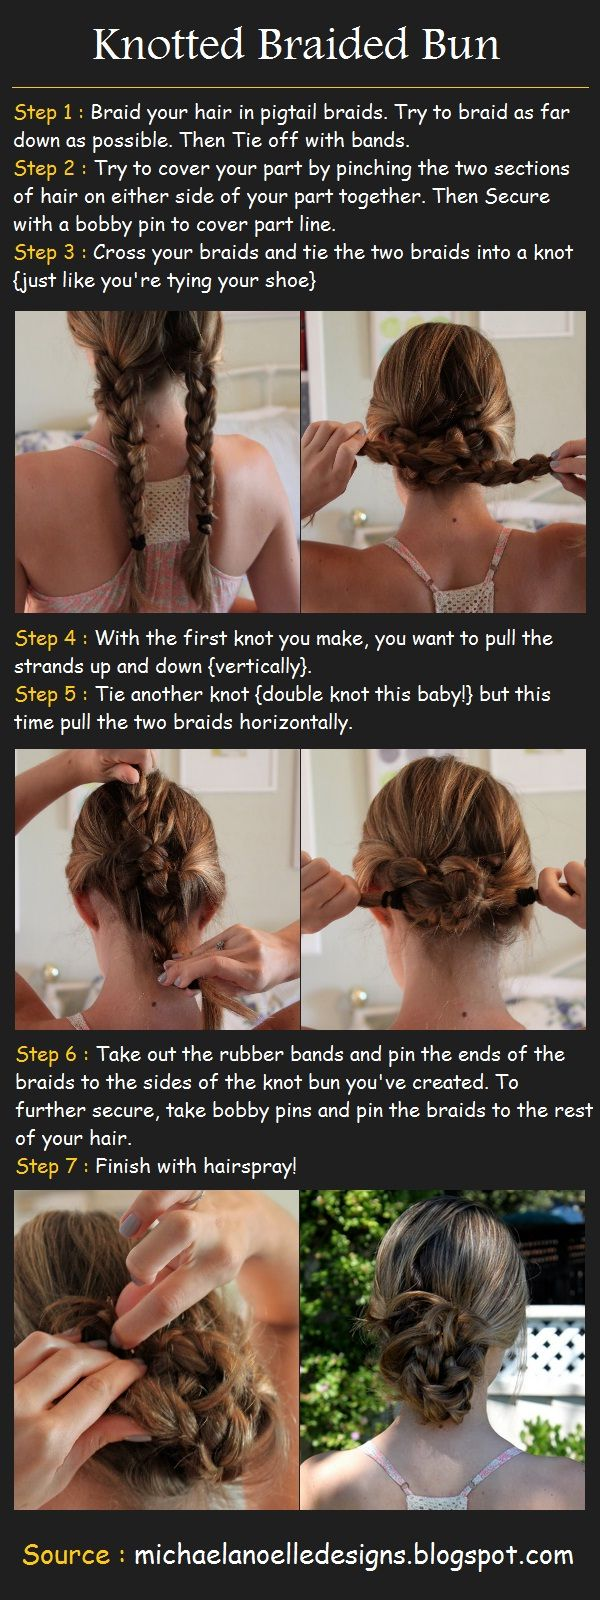 How to do a Knotted Braided Bun (I used to do this all the time...I just need my hair to grow out more...)